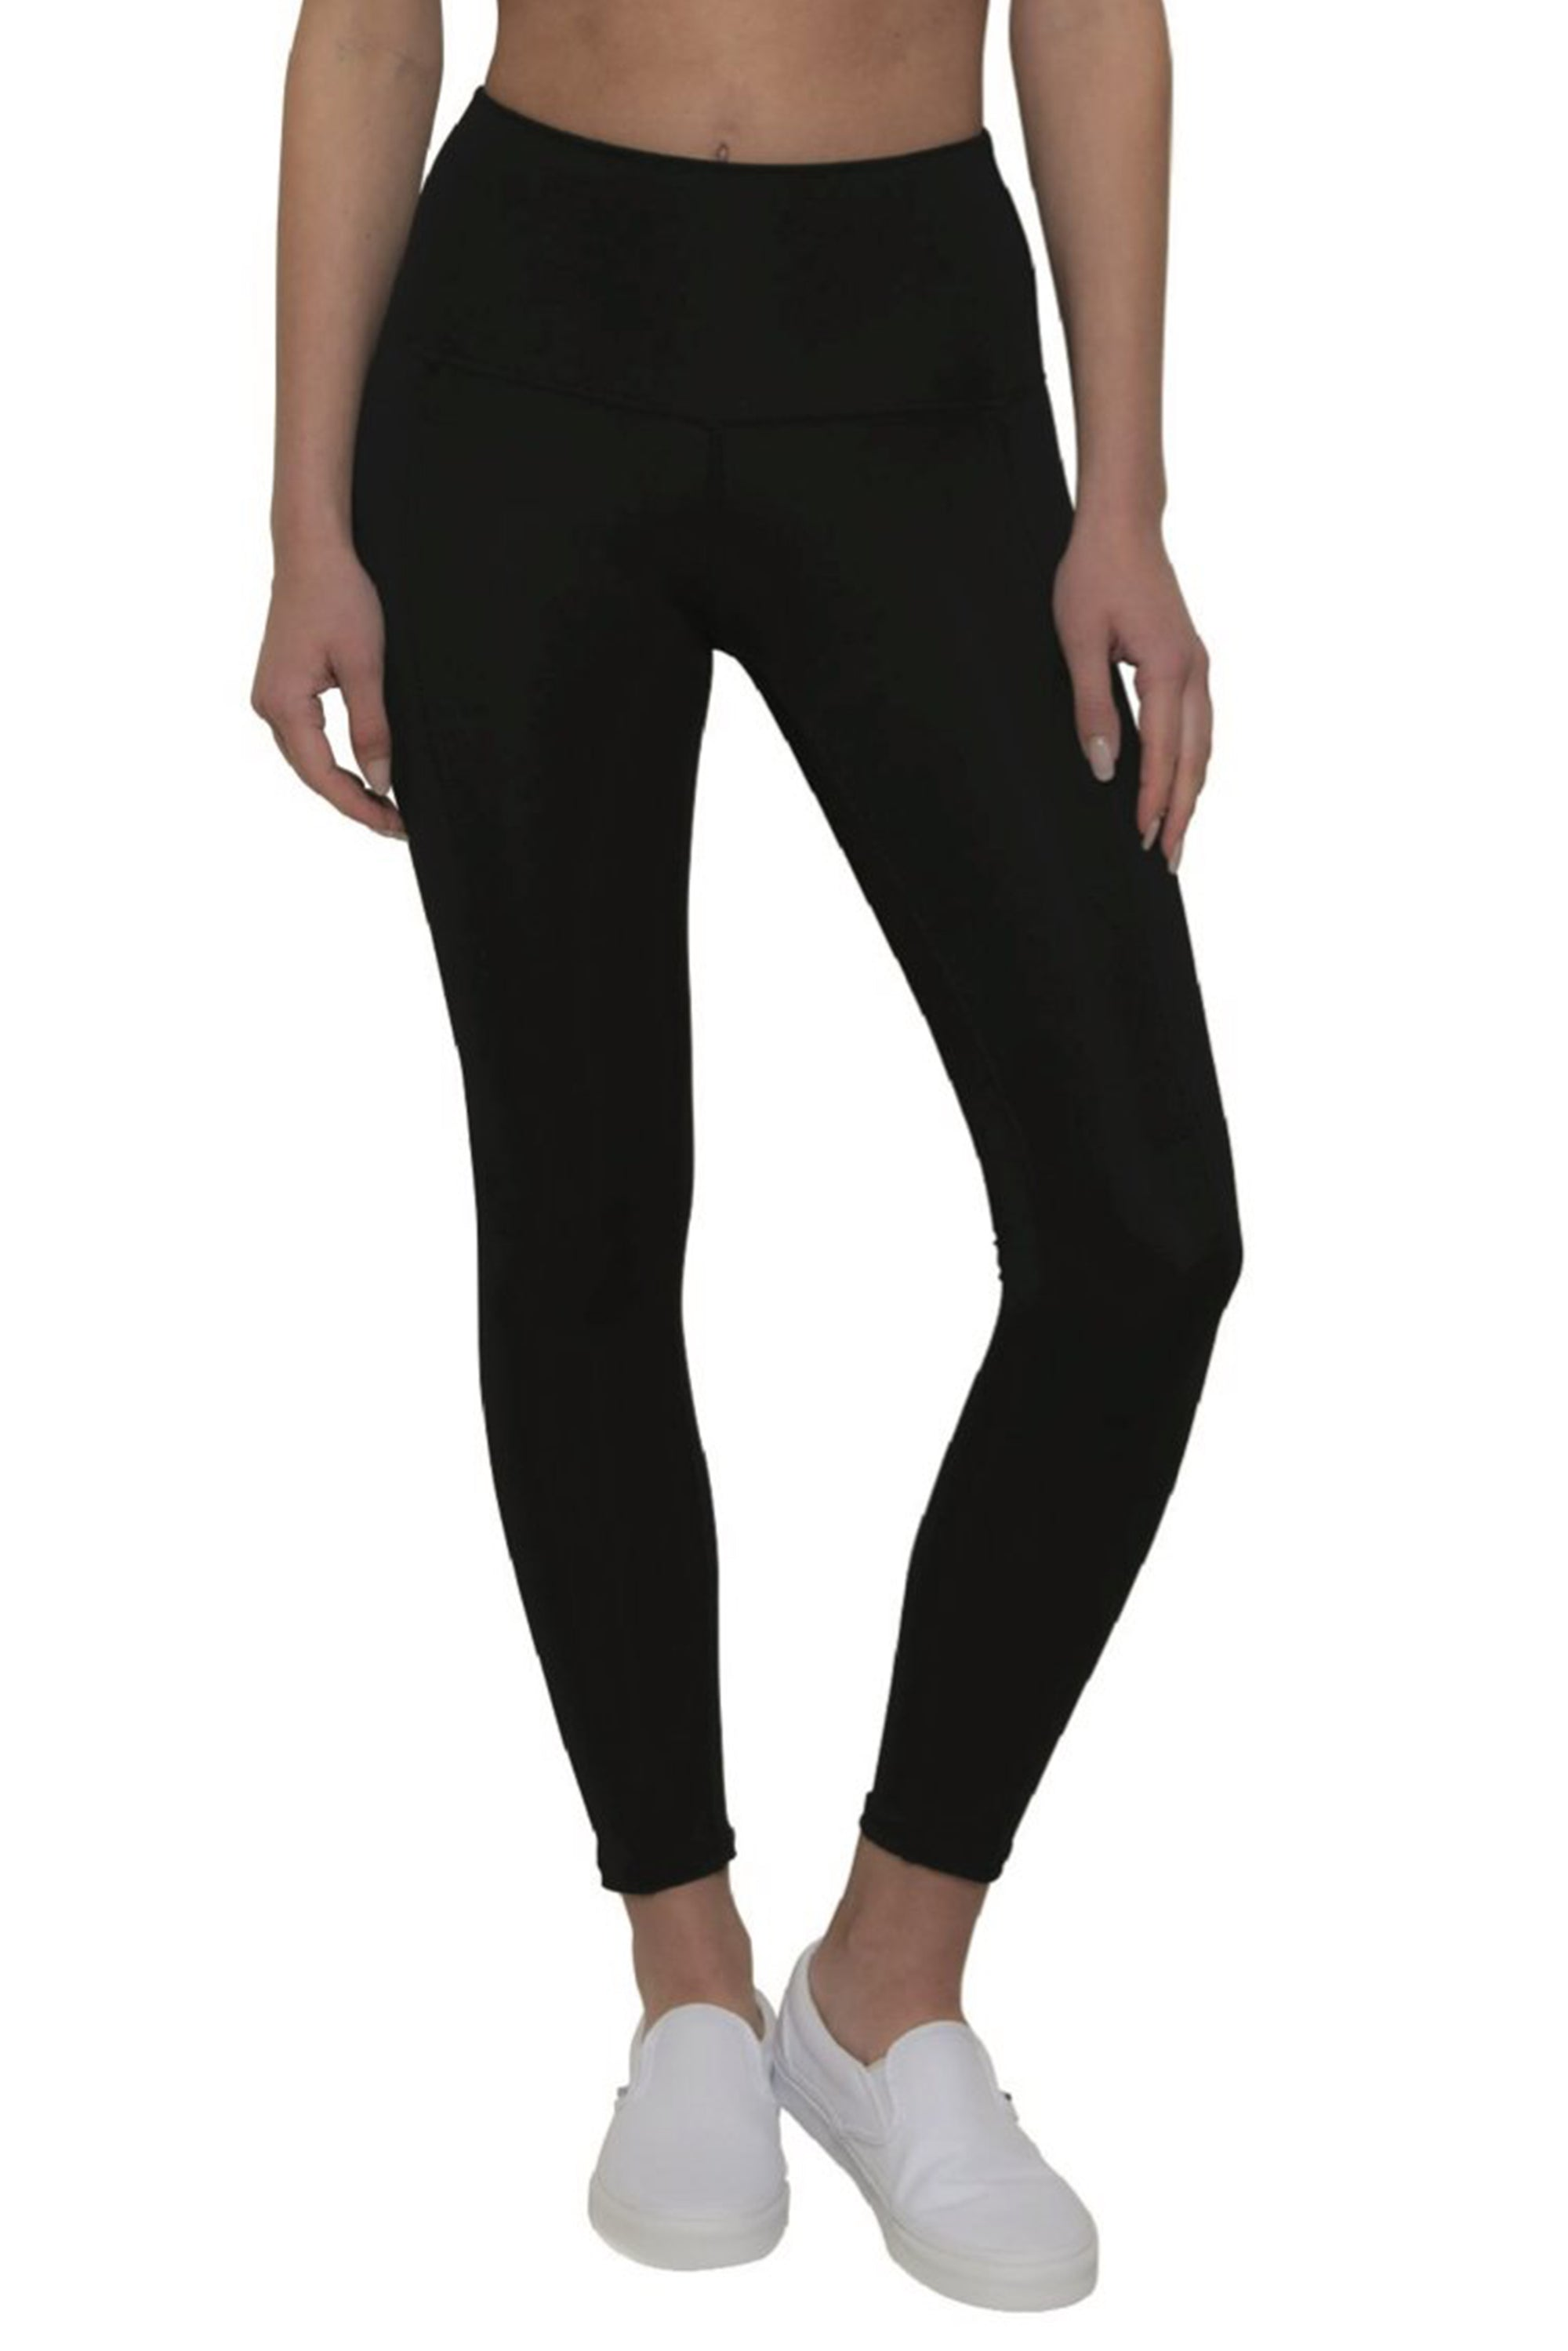 Ink Black Legging